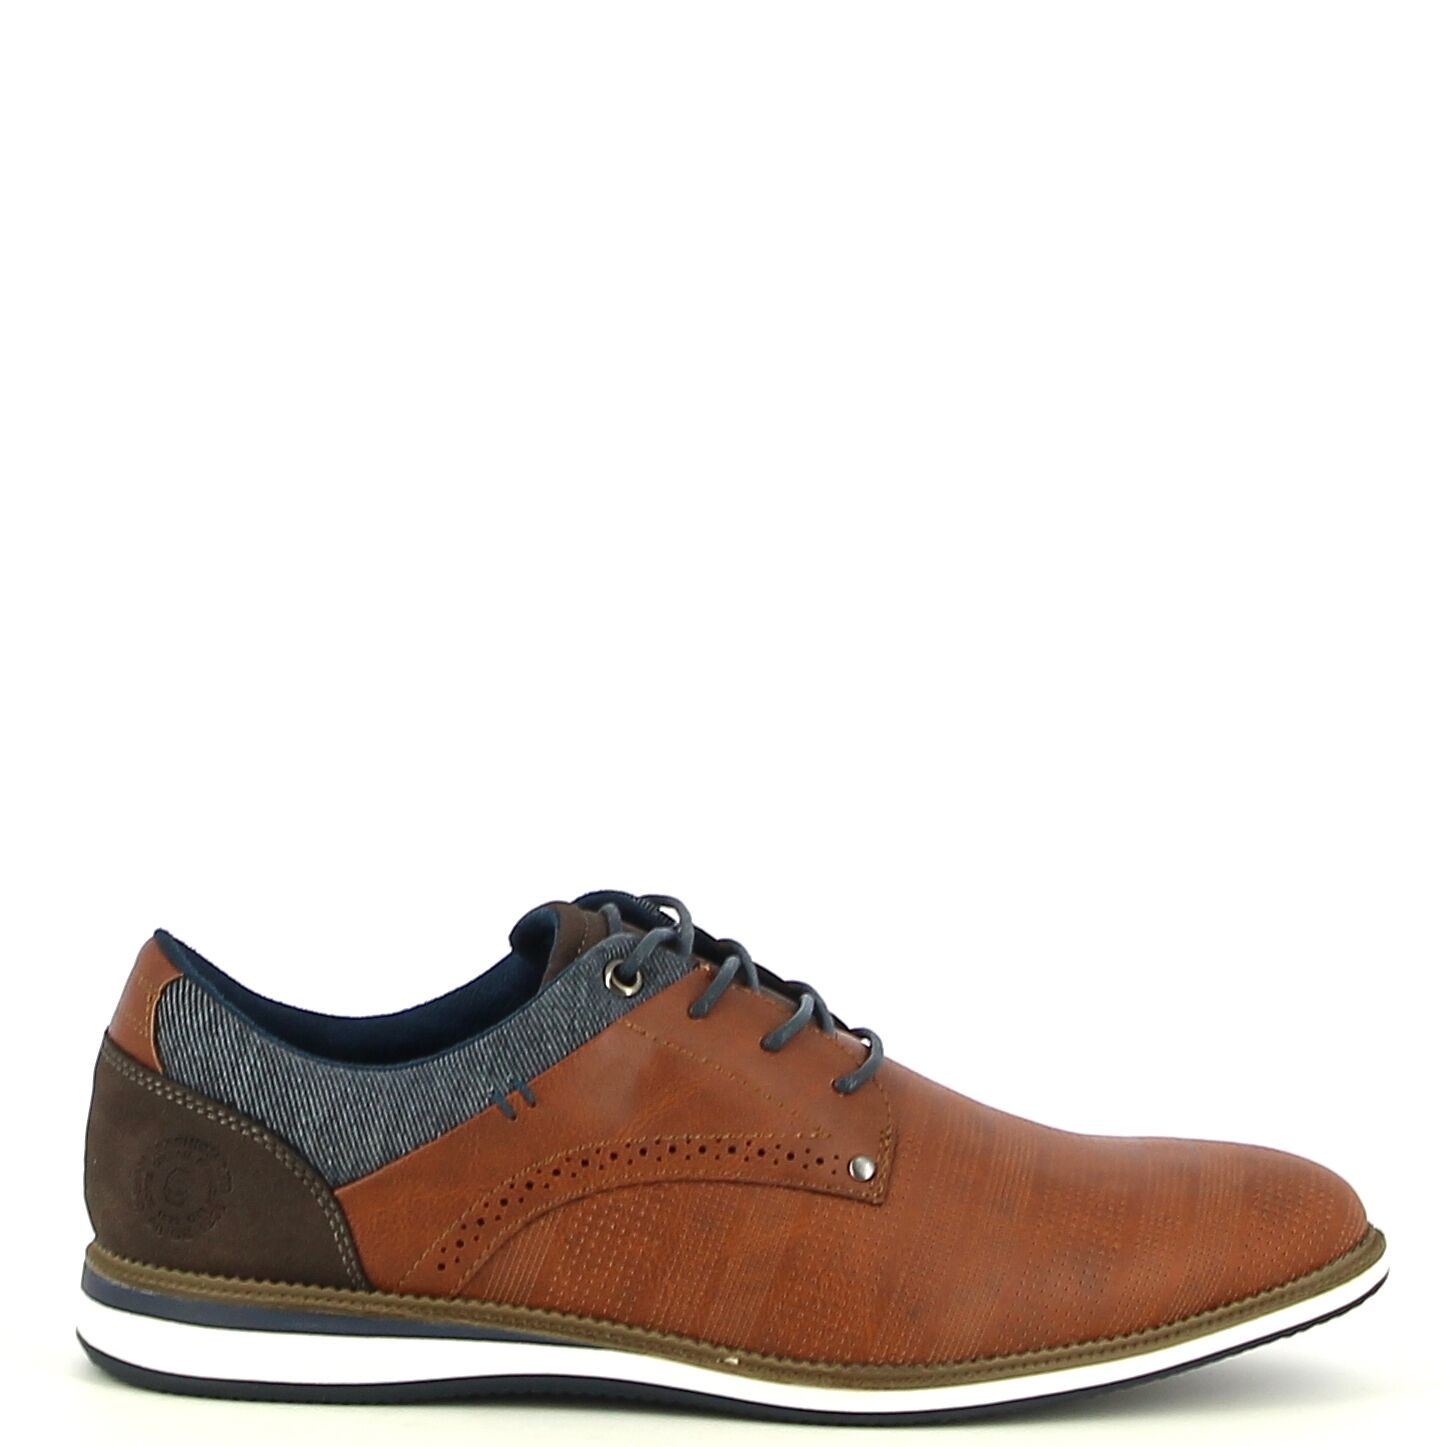 Ken Shoe Fashion - Camel/Blauw - Veterschoenen